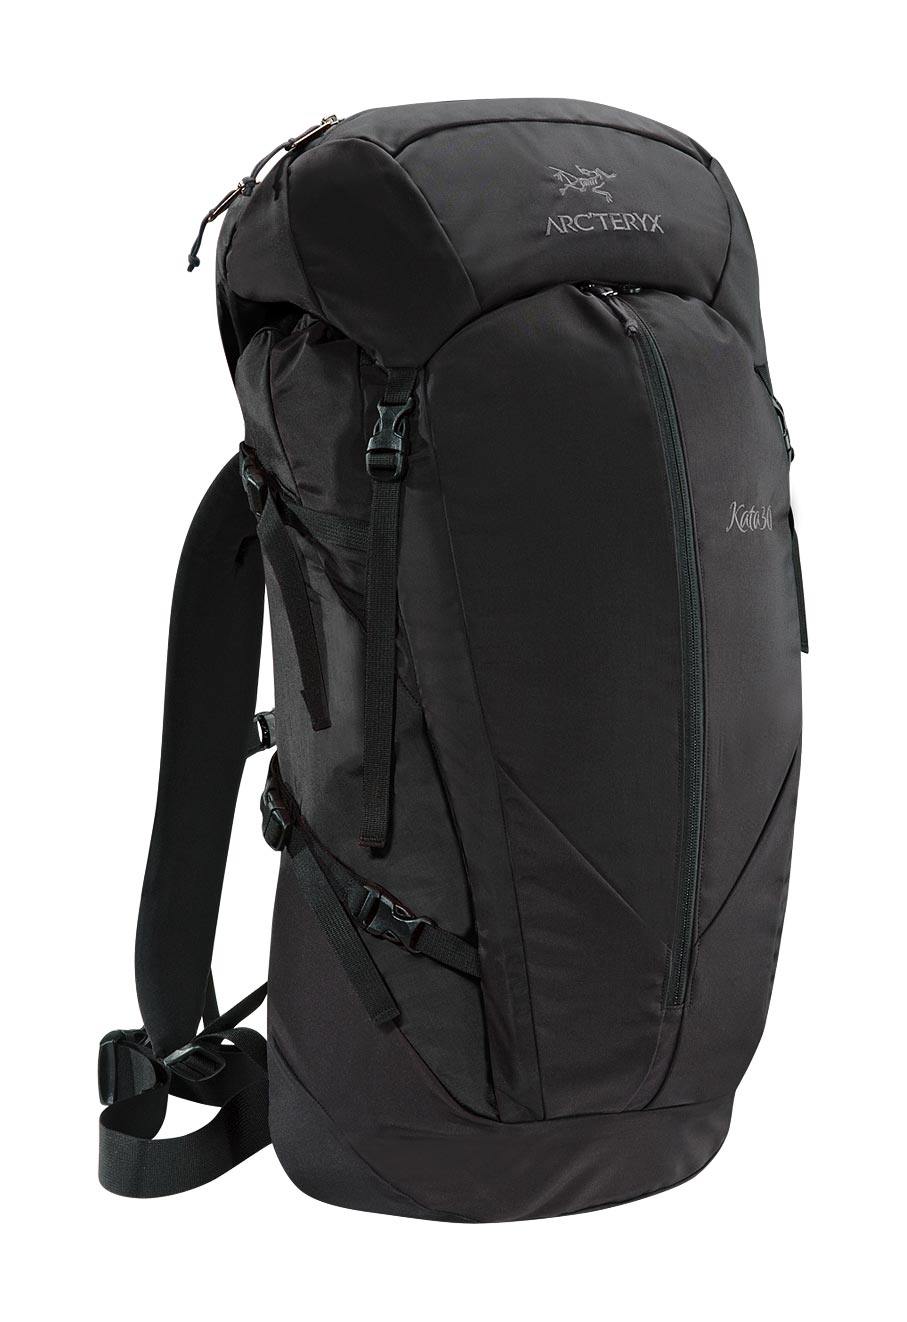 Arcteryx Black Kata 30 - New